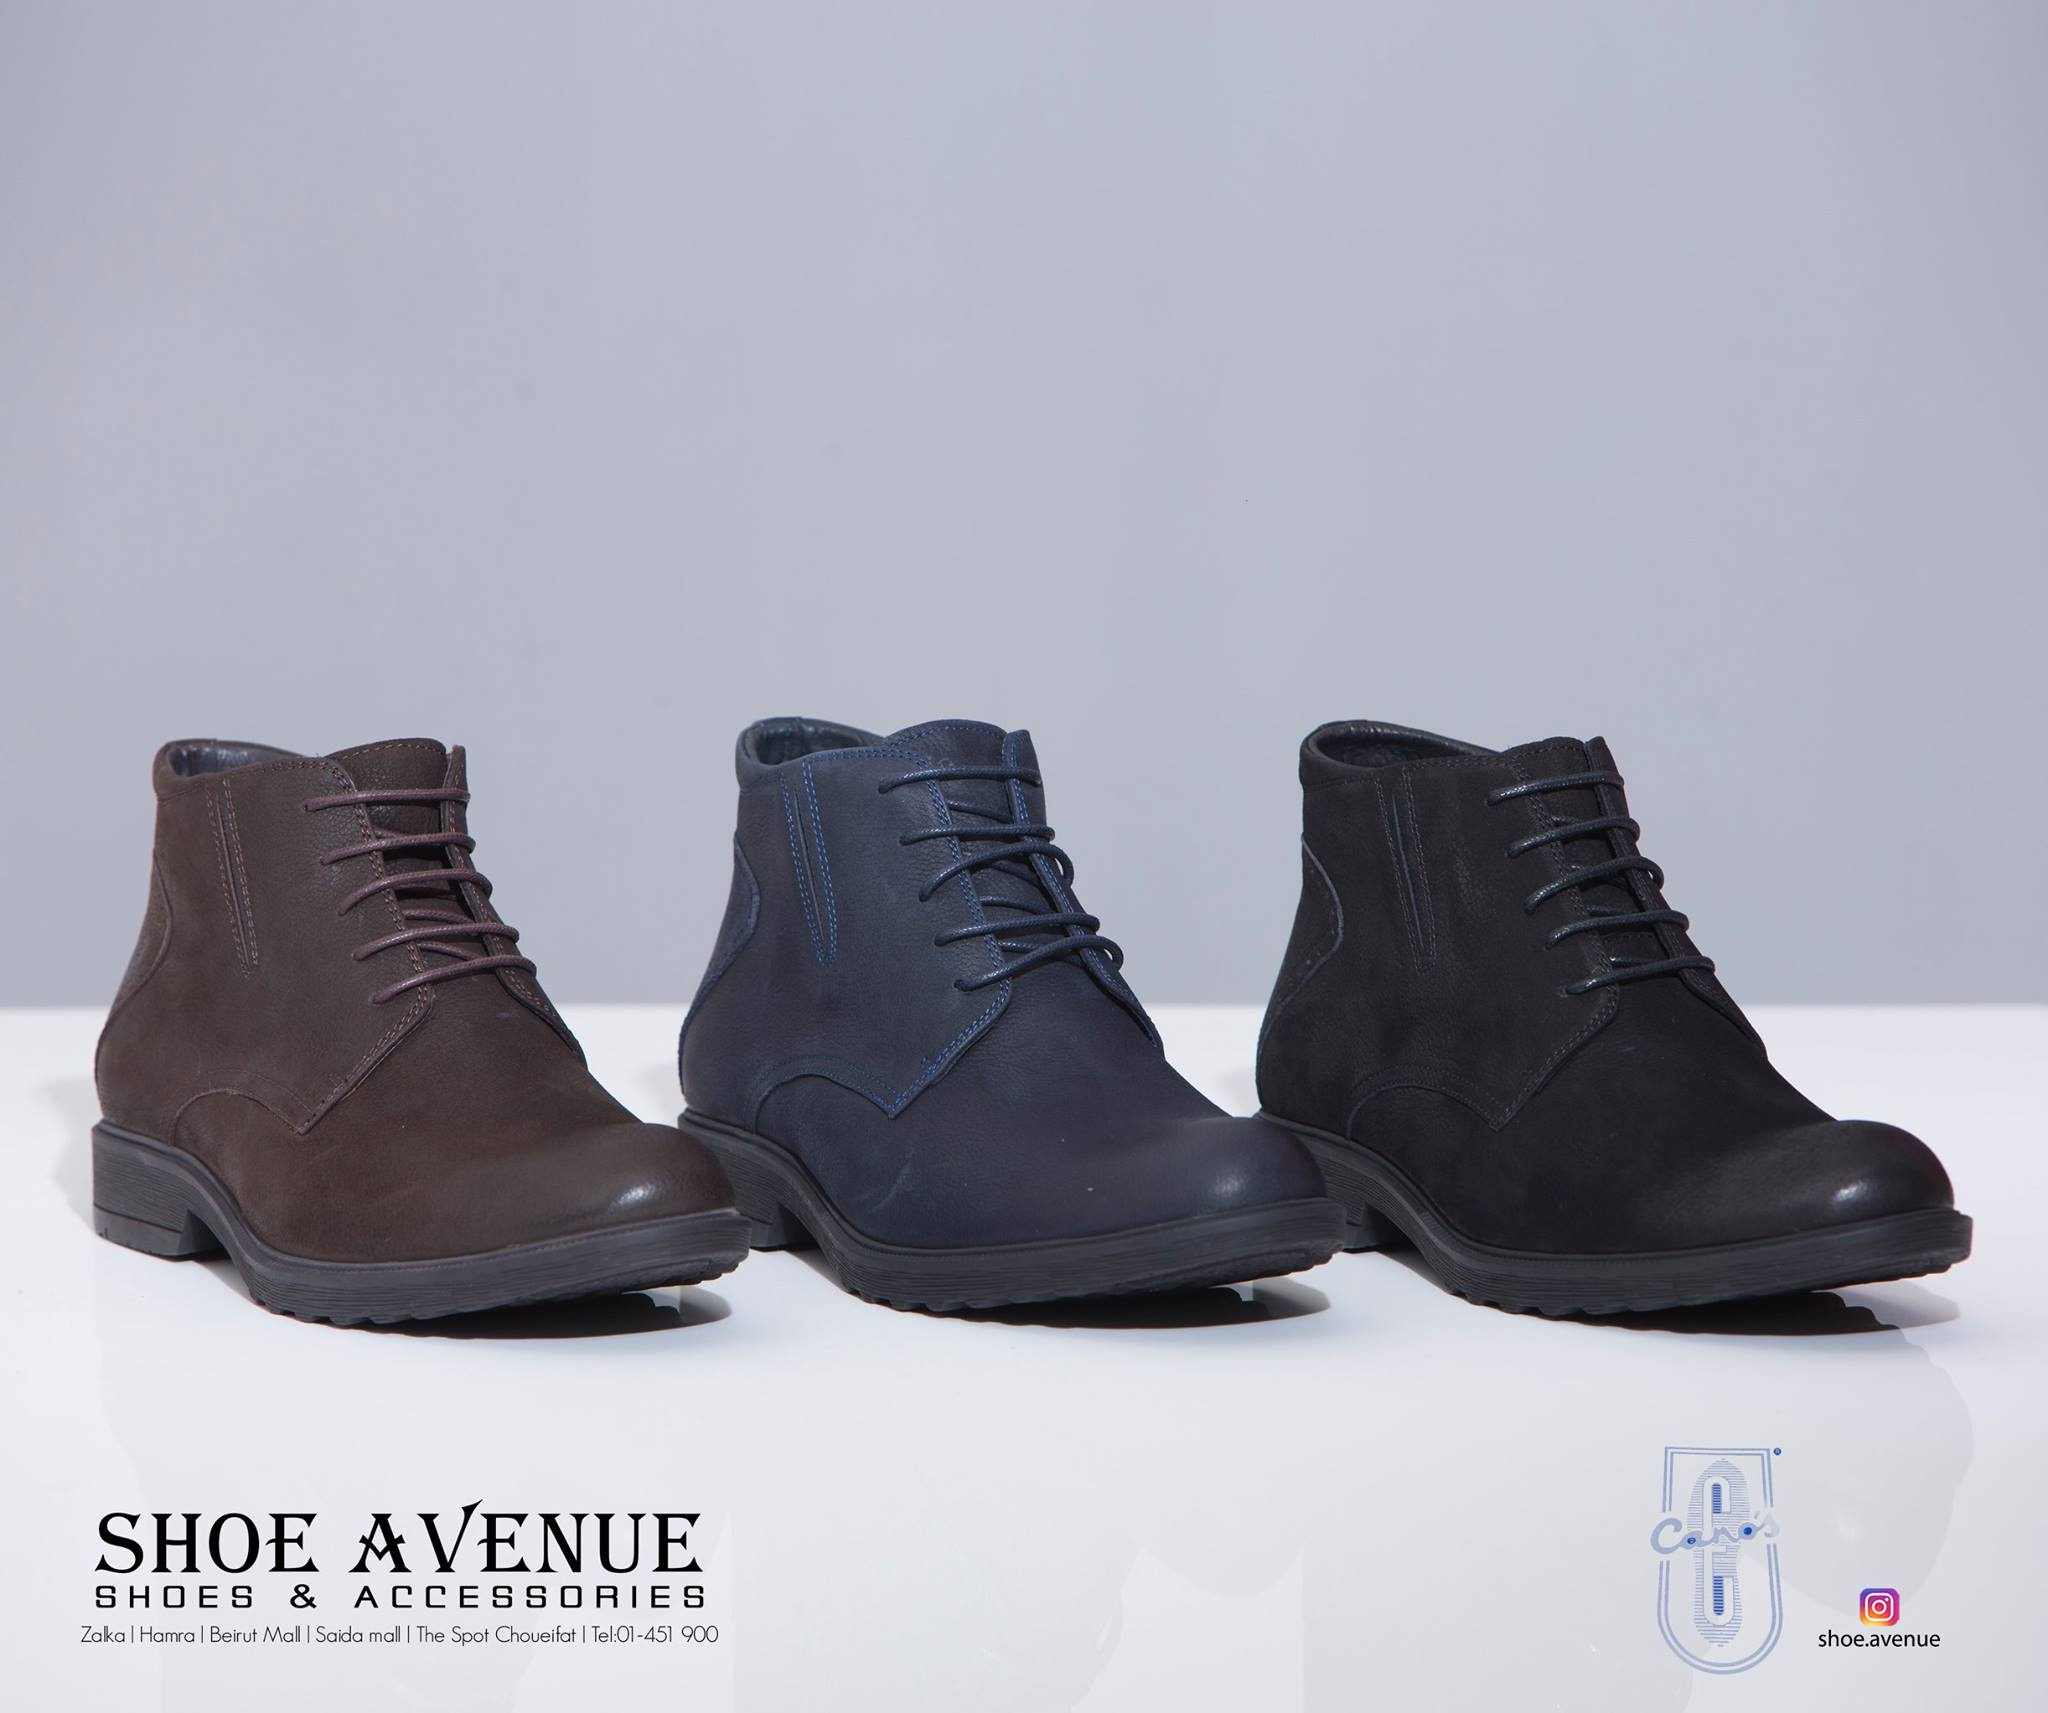 CITYMALL-LEBANON-shoeavenue